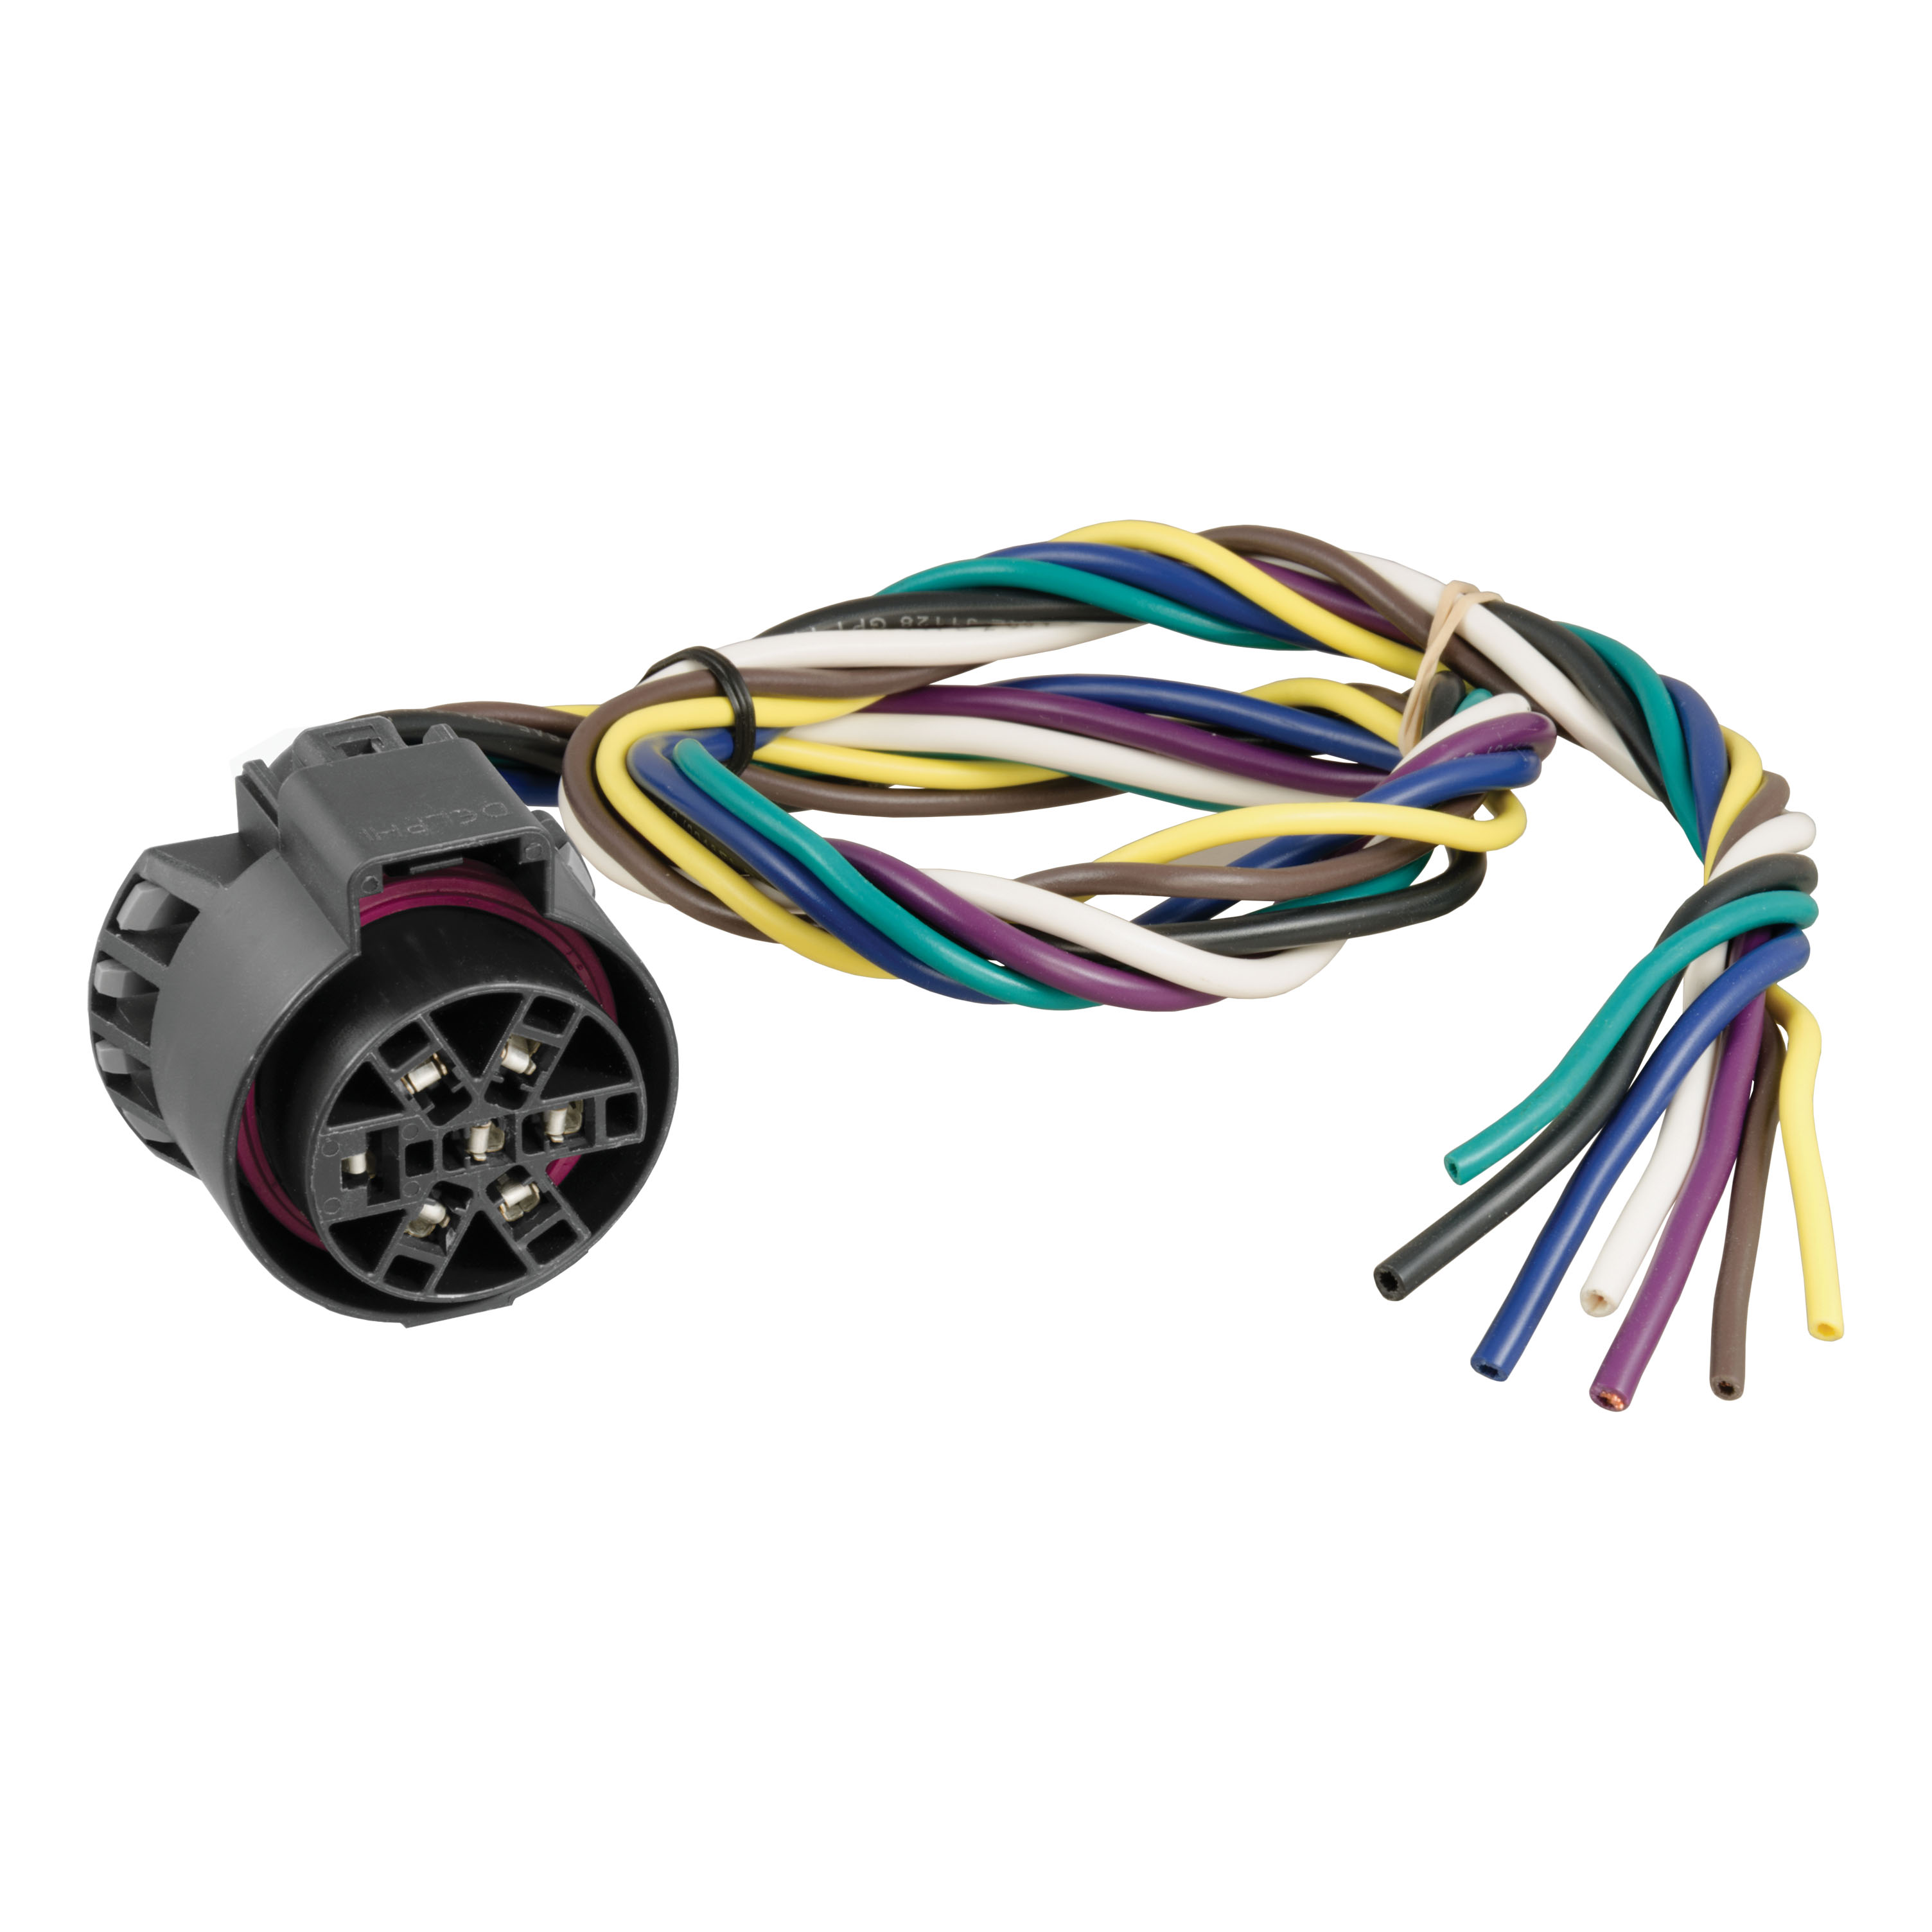 curt wiring 56229 replacement uscar 7-way plug with 24 ... 7 way plug wiring diagram trailer curt 7 way plug wiring diagram